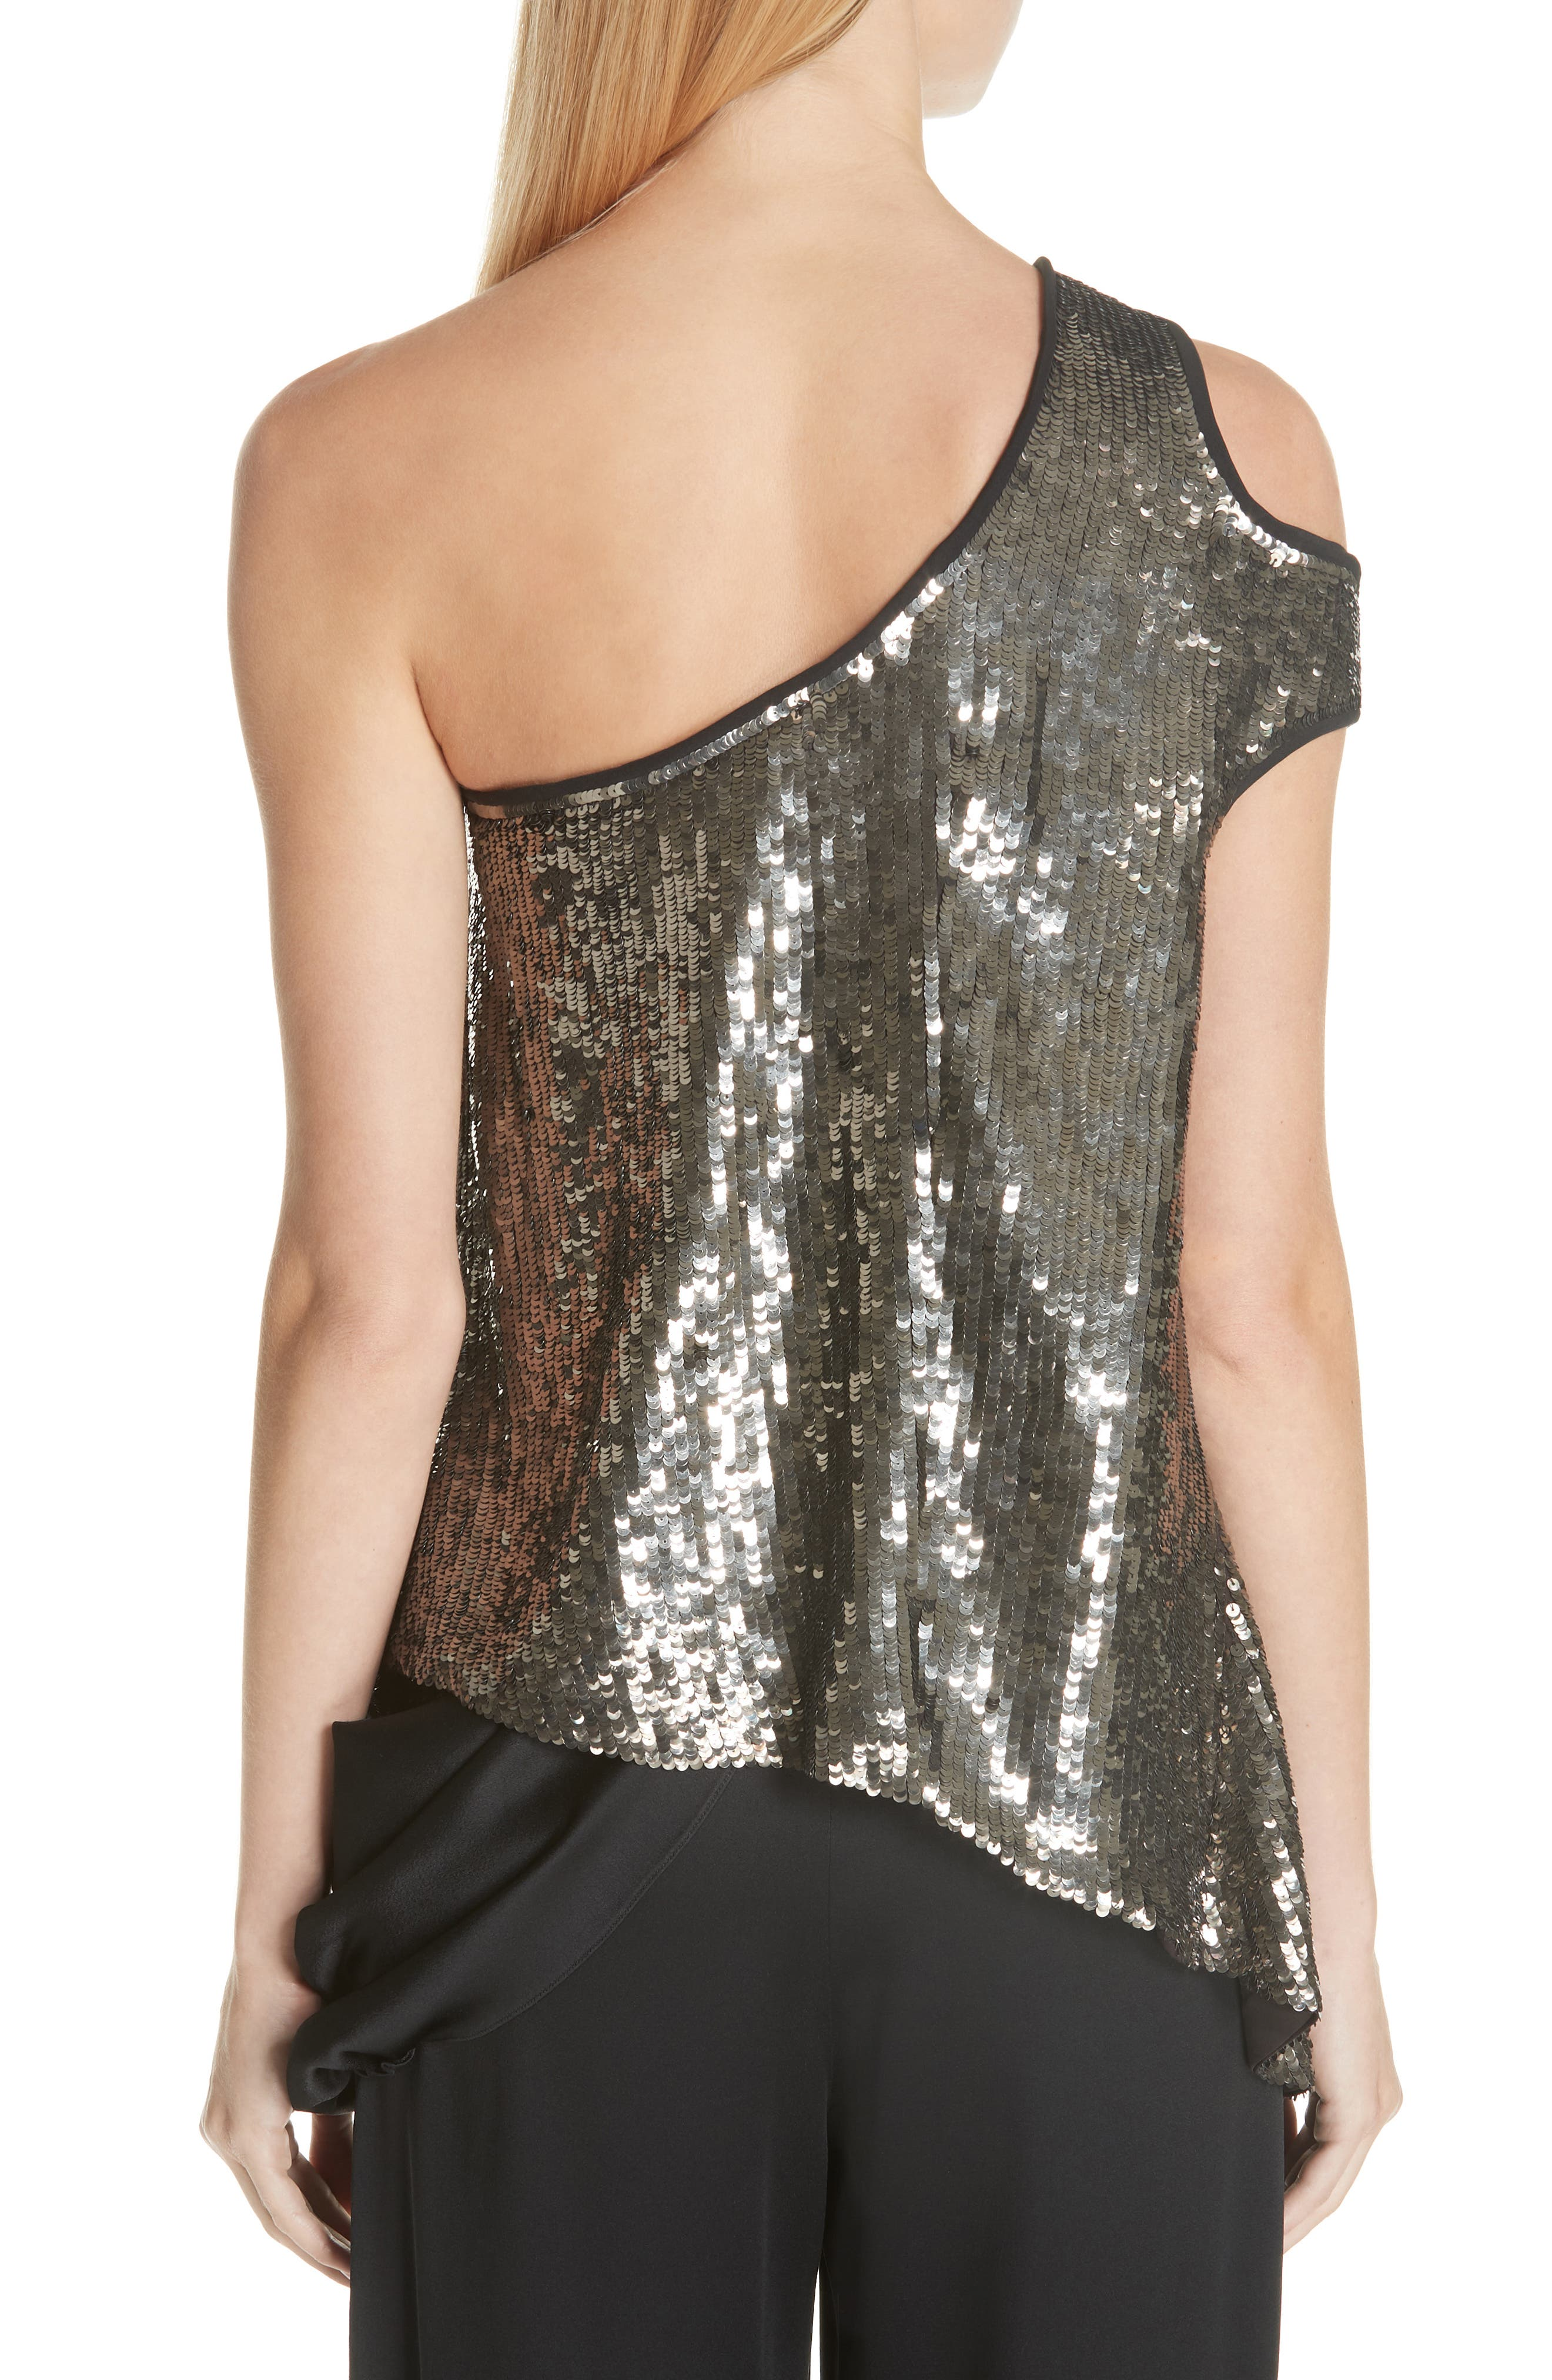 MONSE, Cutout Shoulder Sequin Tank, Alternate thumbnail 2, color, GUN METAL